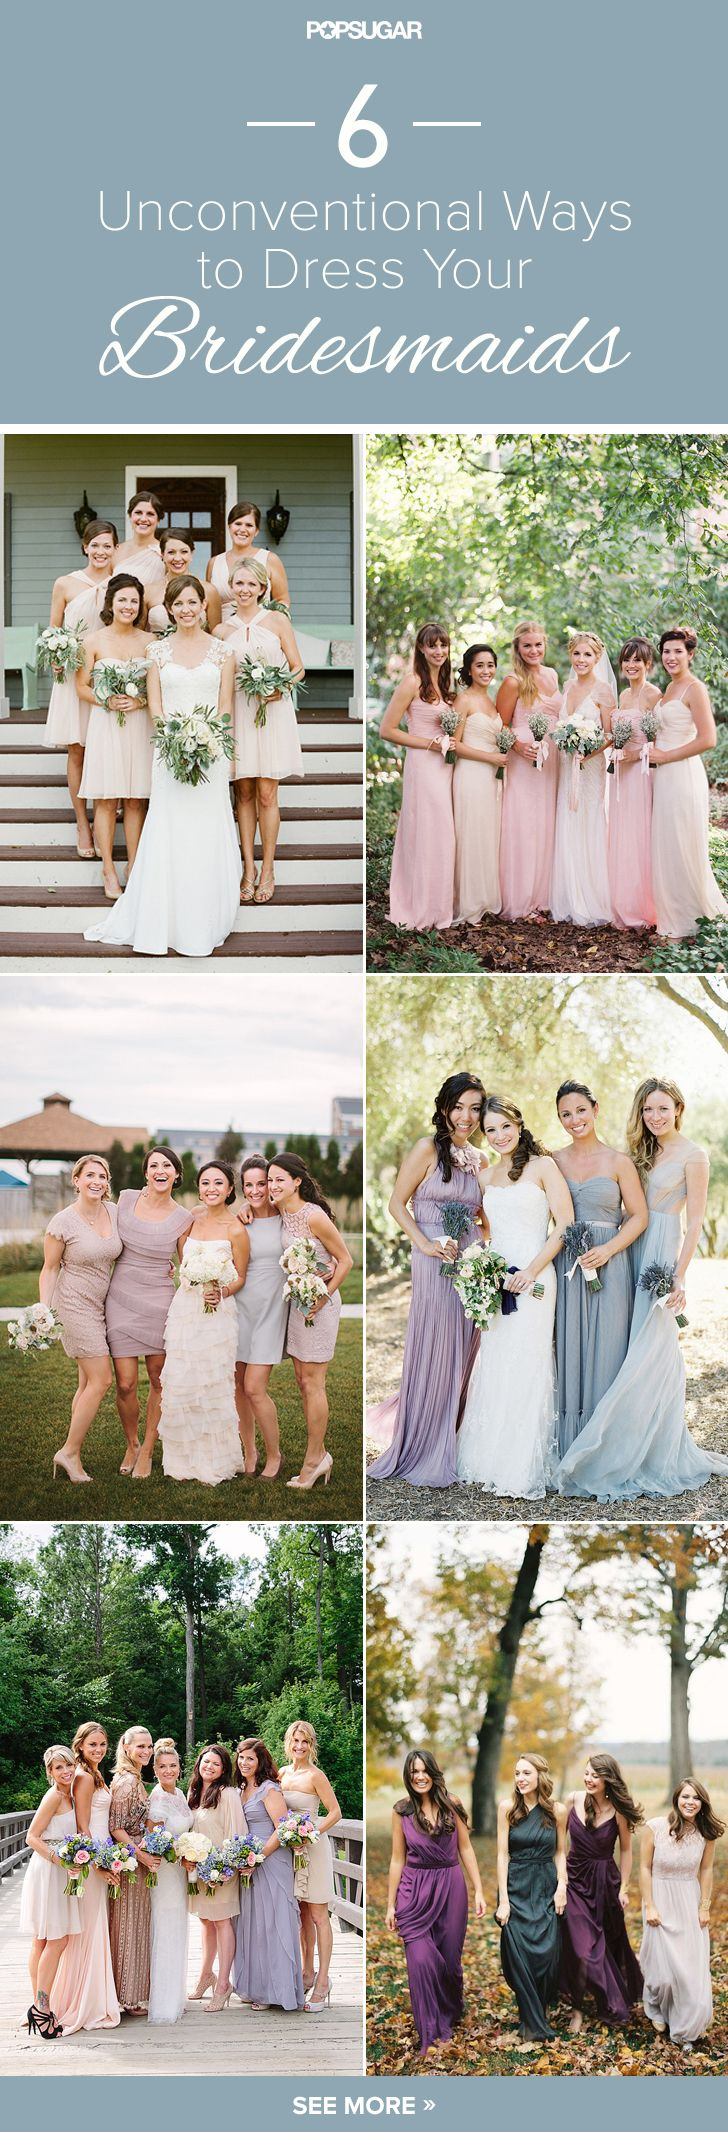 The unique dresses that will set your bridesmaids apart.